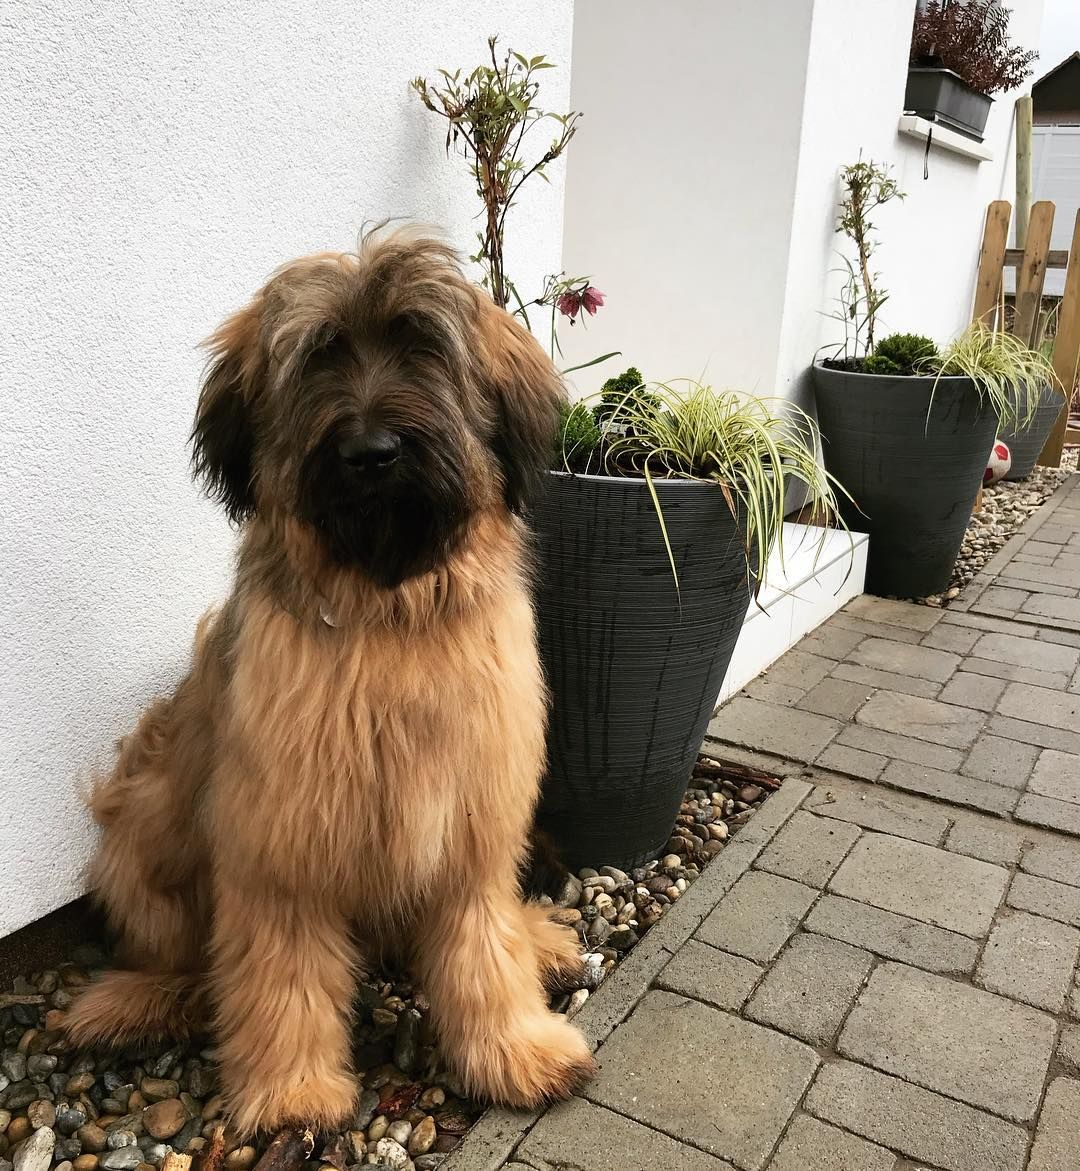 Chloe The Briard On Instagram We Did Gardening With Mom I Was Such A Good Girl That Mom Said We Would Take An Extra Long Walk In Animaux Boule De Poil